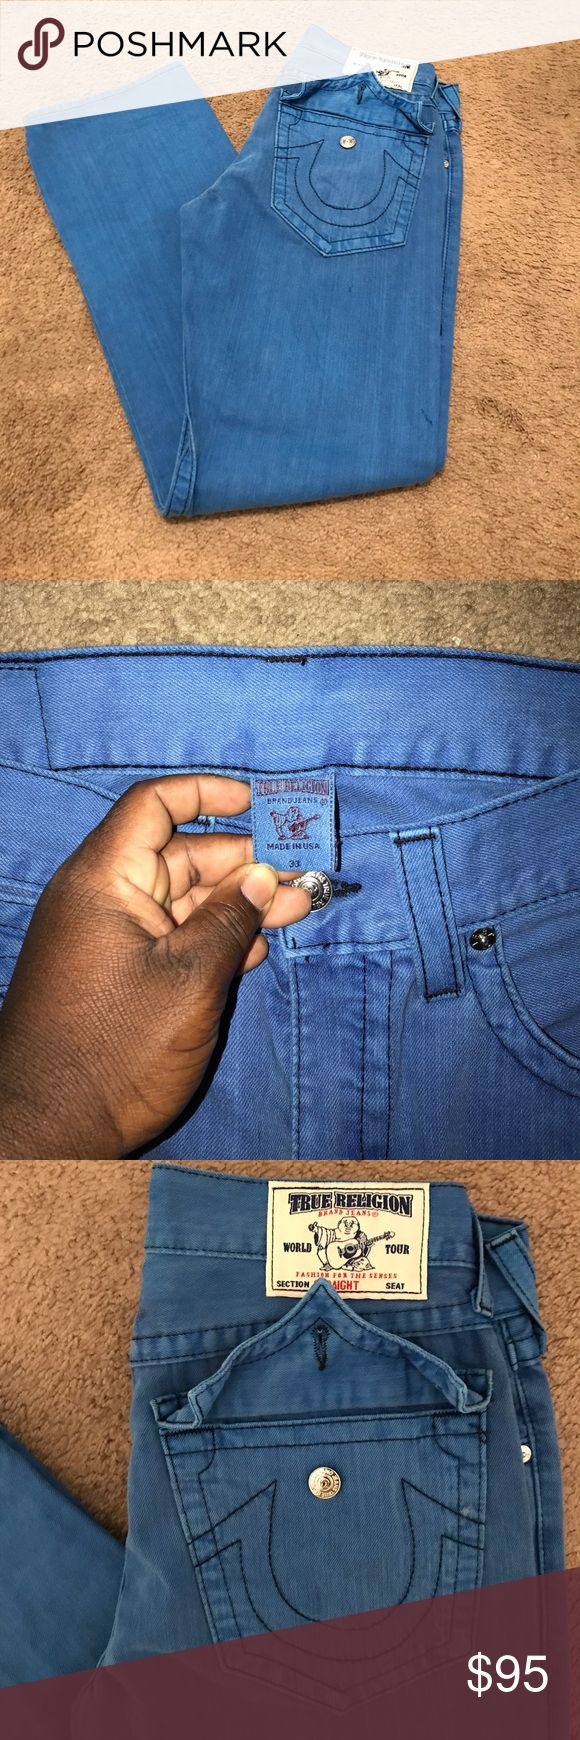 True religion Jeans 100% authentic Brand new true religion jeans light blue size 33 never worn!! Become the first owner today!! True Religion Jeans